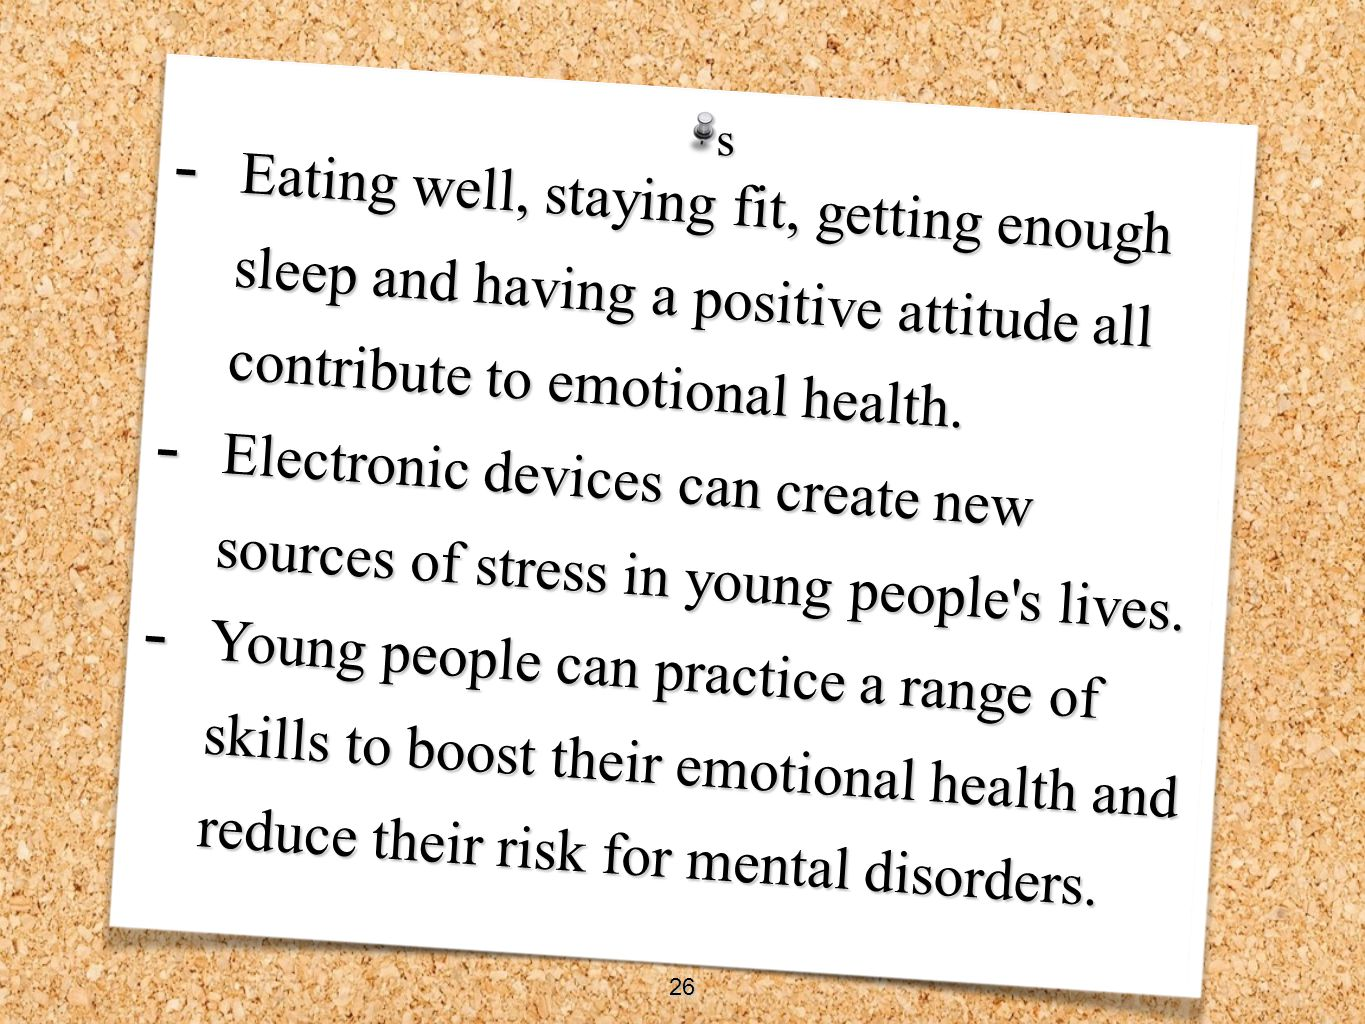 Eating well, staying fit, getting enough sleep and having a positive attitude all contribute to emotional health.